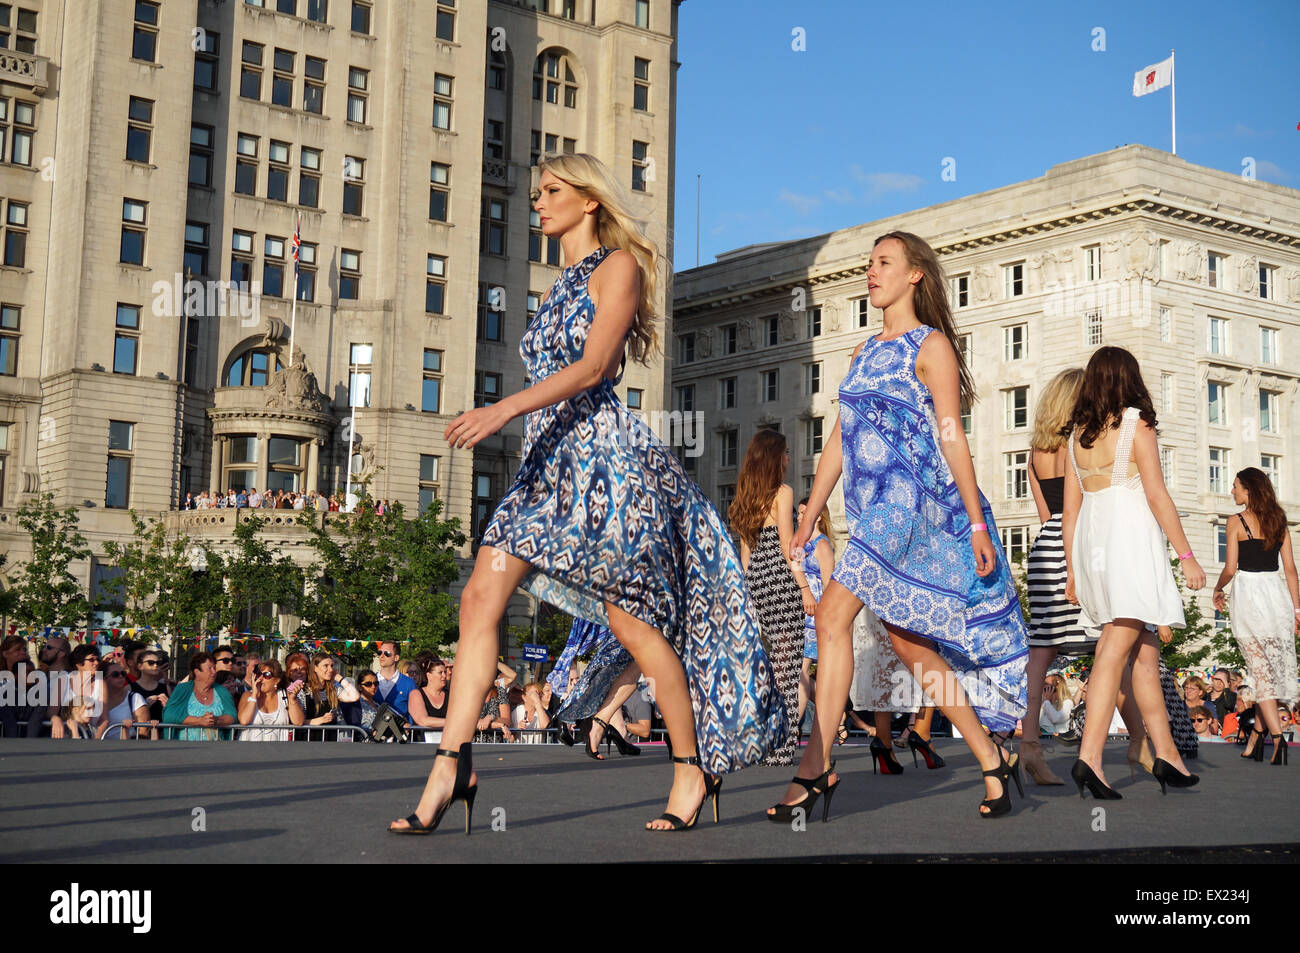 Liverpool, UK. 04th July, 2015. A new Guiness World Record for most people modelling on a catwalk was broken in - Stock Image